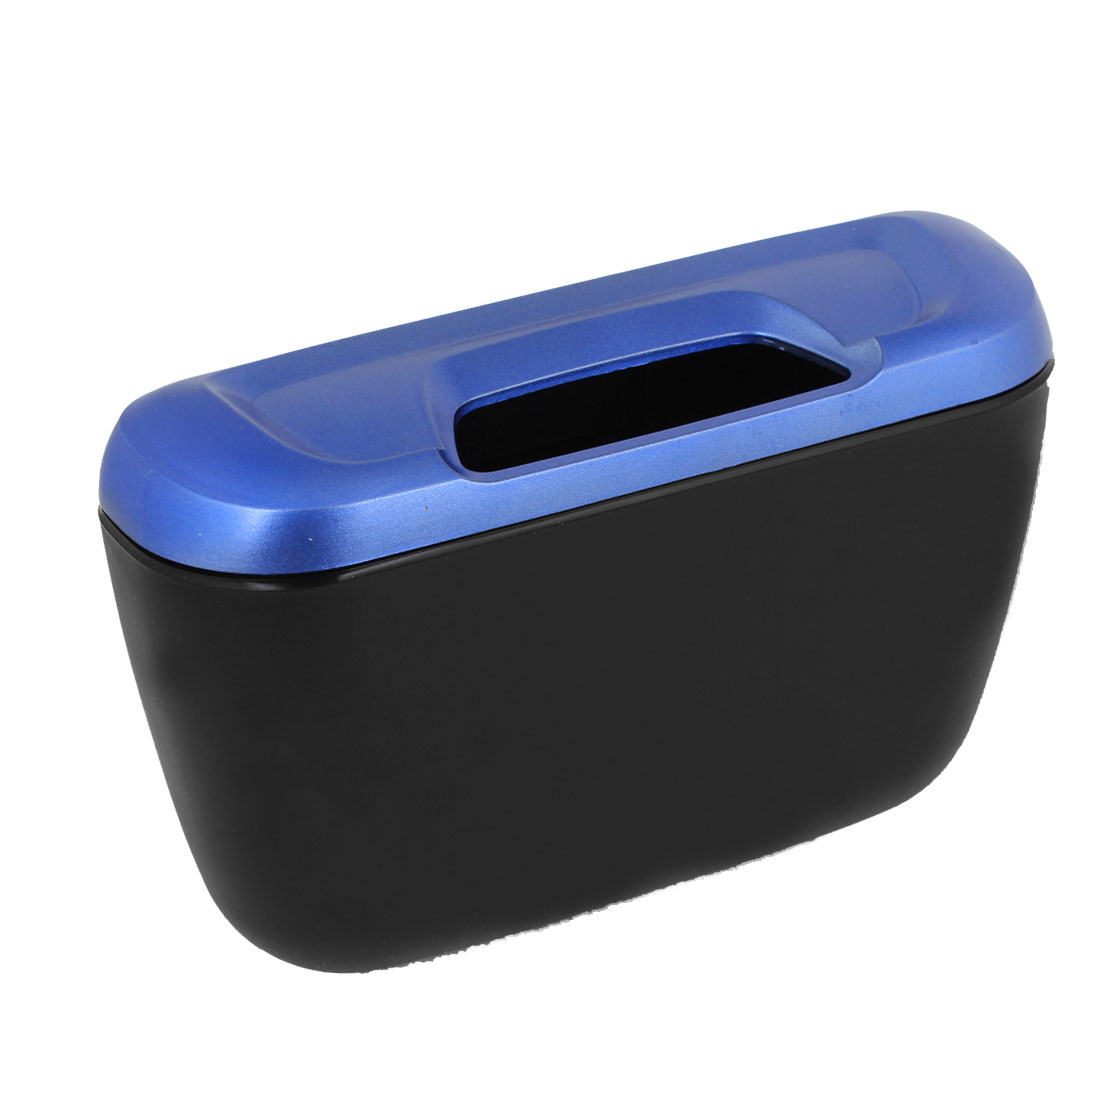 Home Office Vehicle Car Plastic Handle Open Garbage Trash Can Blue Black